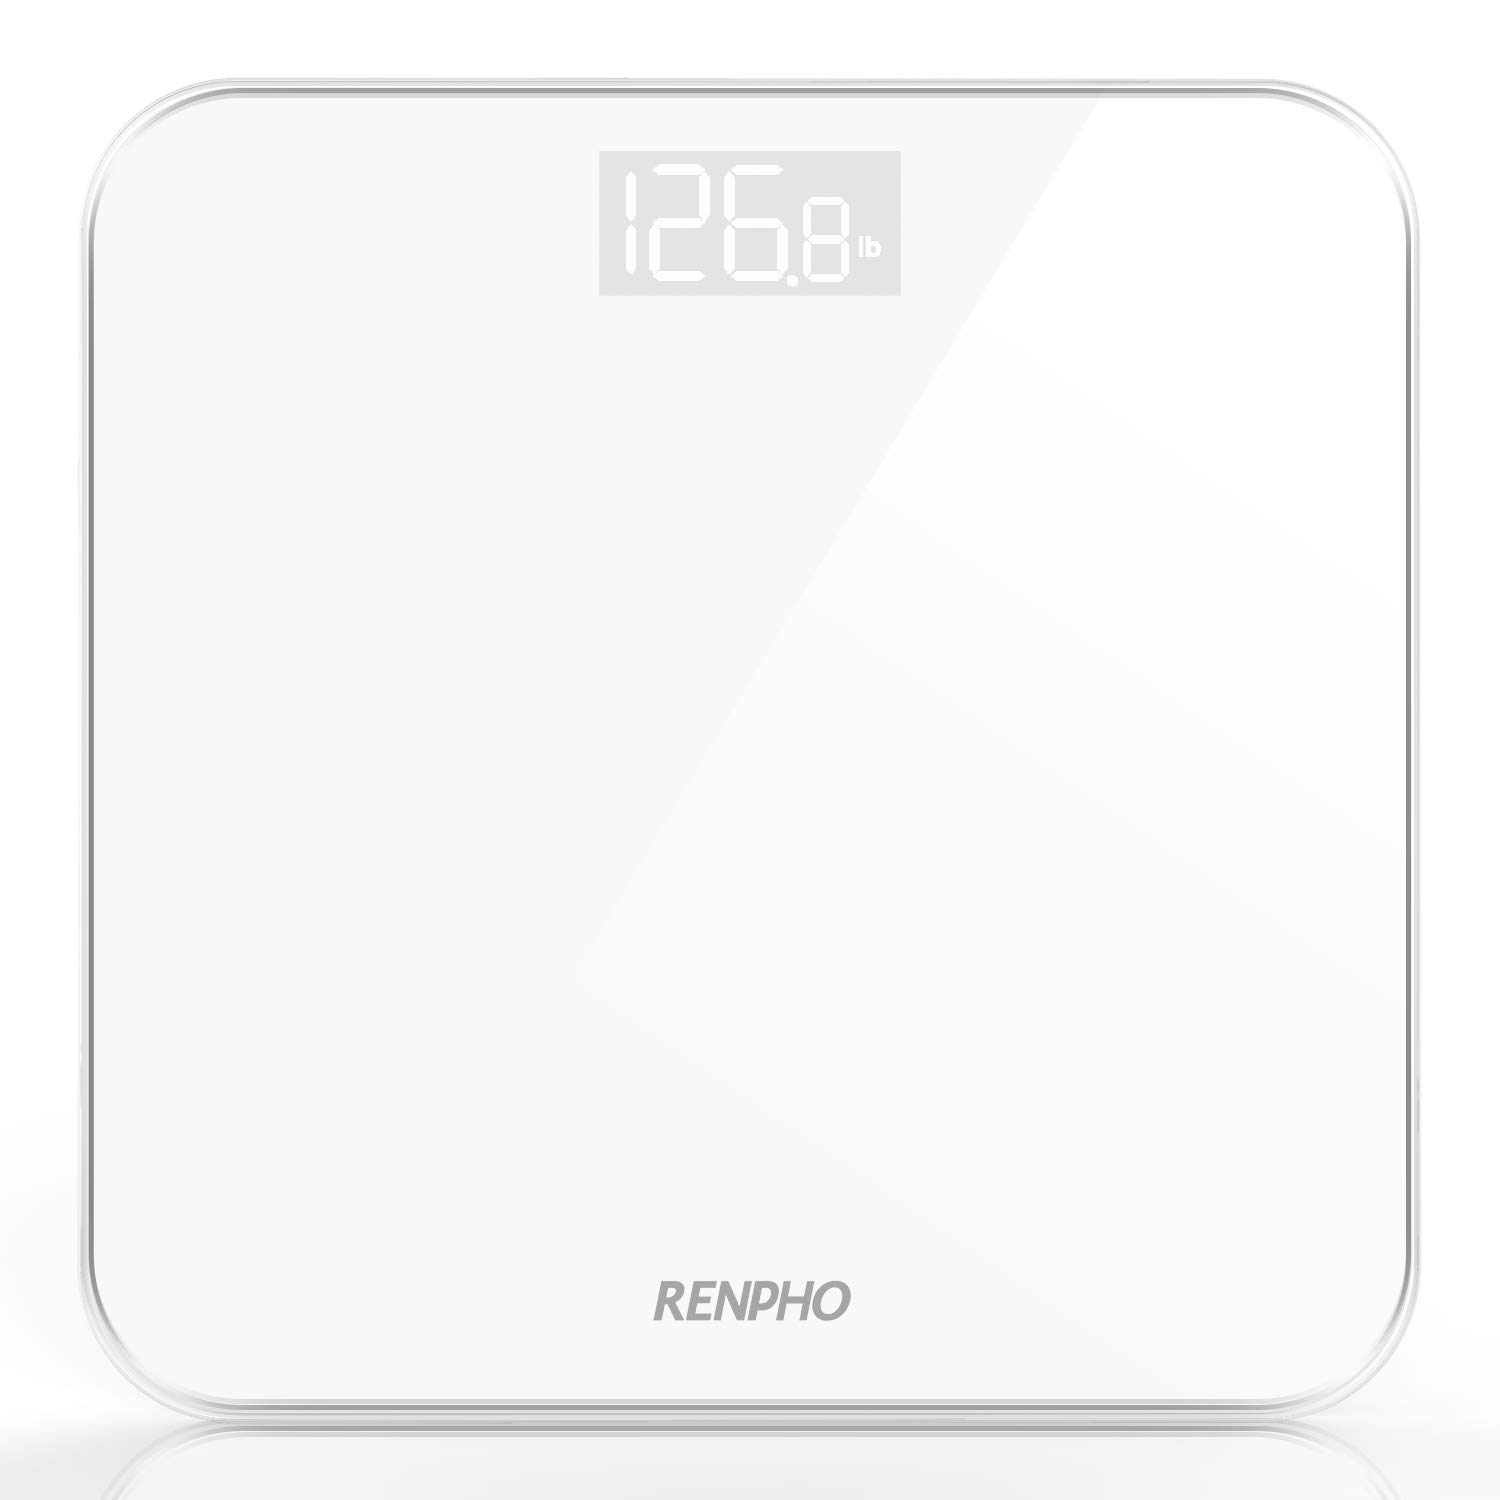 RENPHO Digital Bathroom Scale, Highly Accurate Body Weight Scale with Lighted Display, Step-On Technology, 400 lb, White